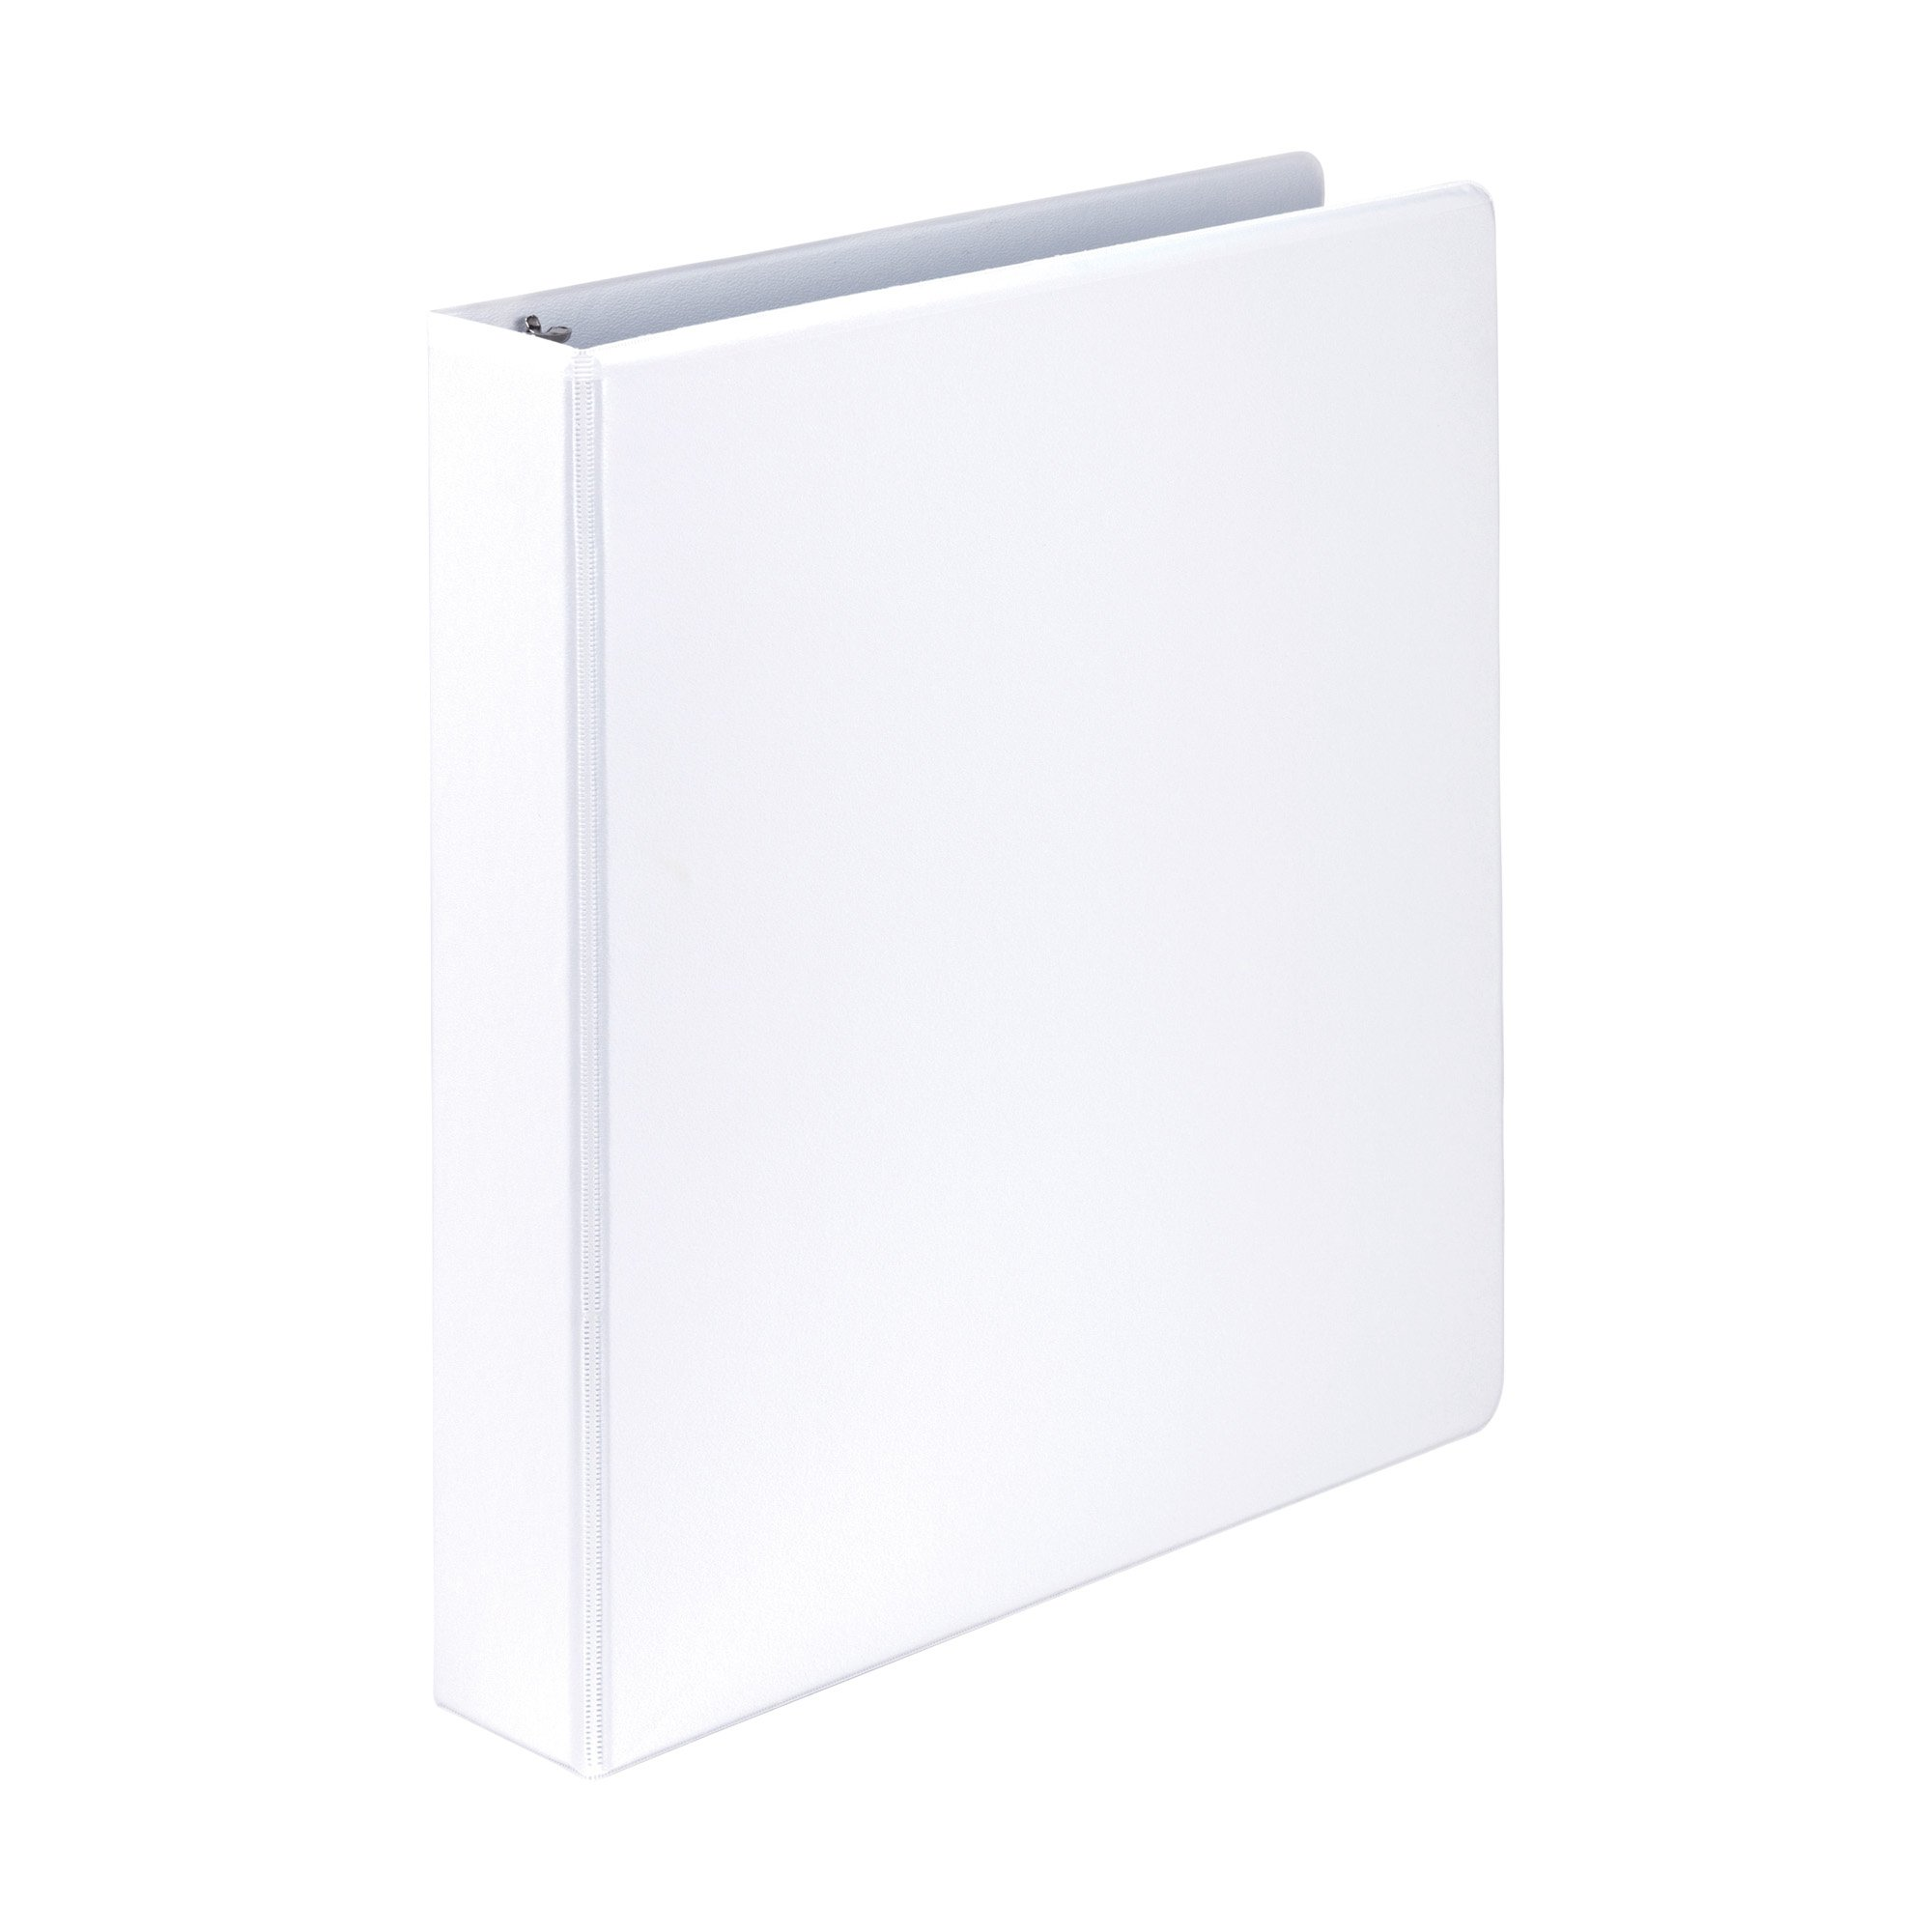 Samsill Economy 3 Ring View Binder, 1.5 Inch Round Ring – Holds 350 Sheets, PVC-Free / Non-Stick Customizable  Cover, White, 12 Pack by Samsill (Image #2)